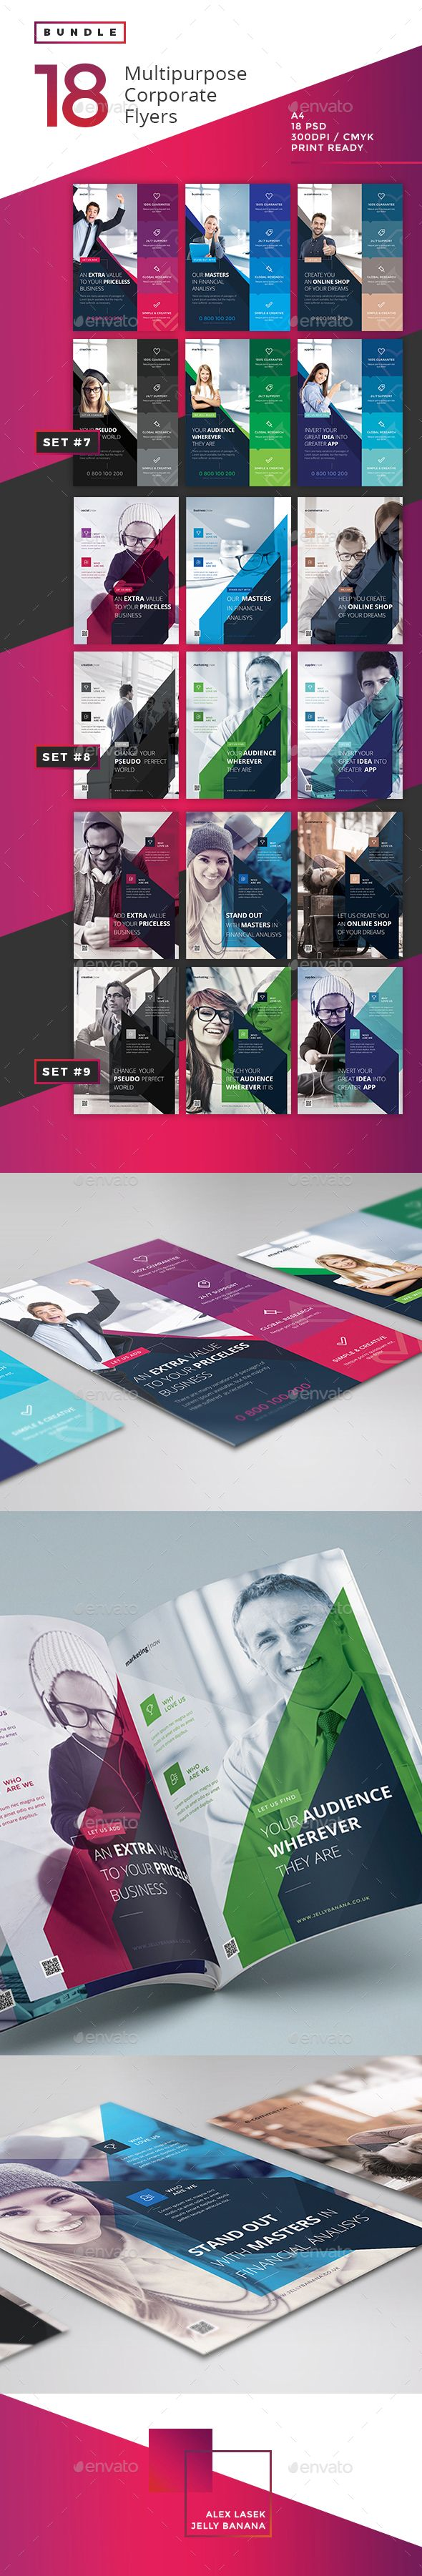 Corporate Flyer Bundle 3 - 18PSD